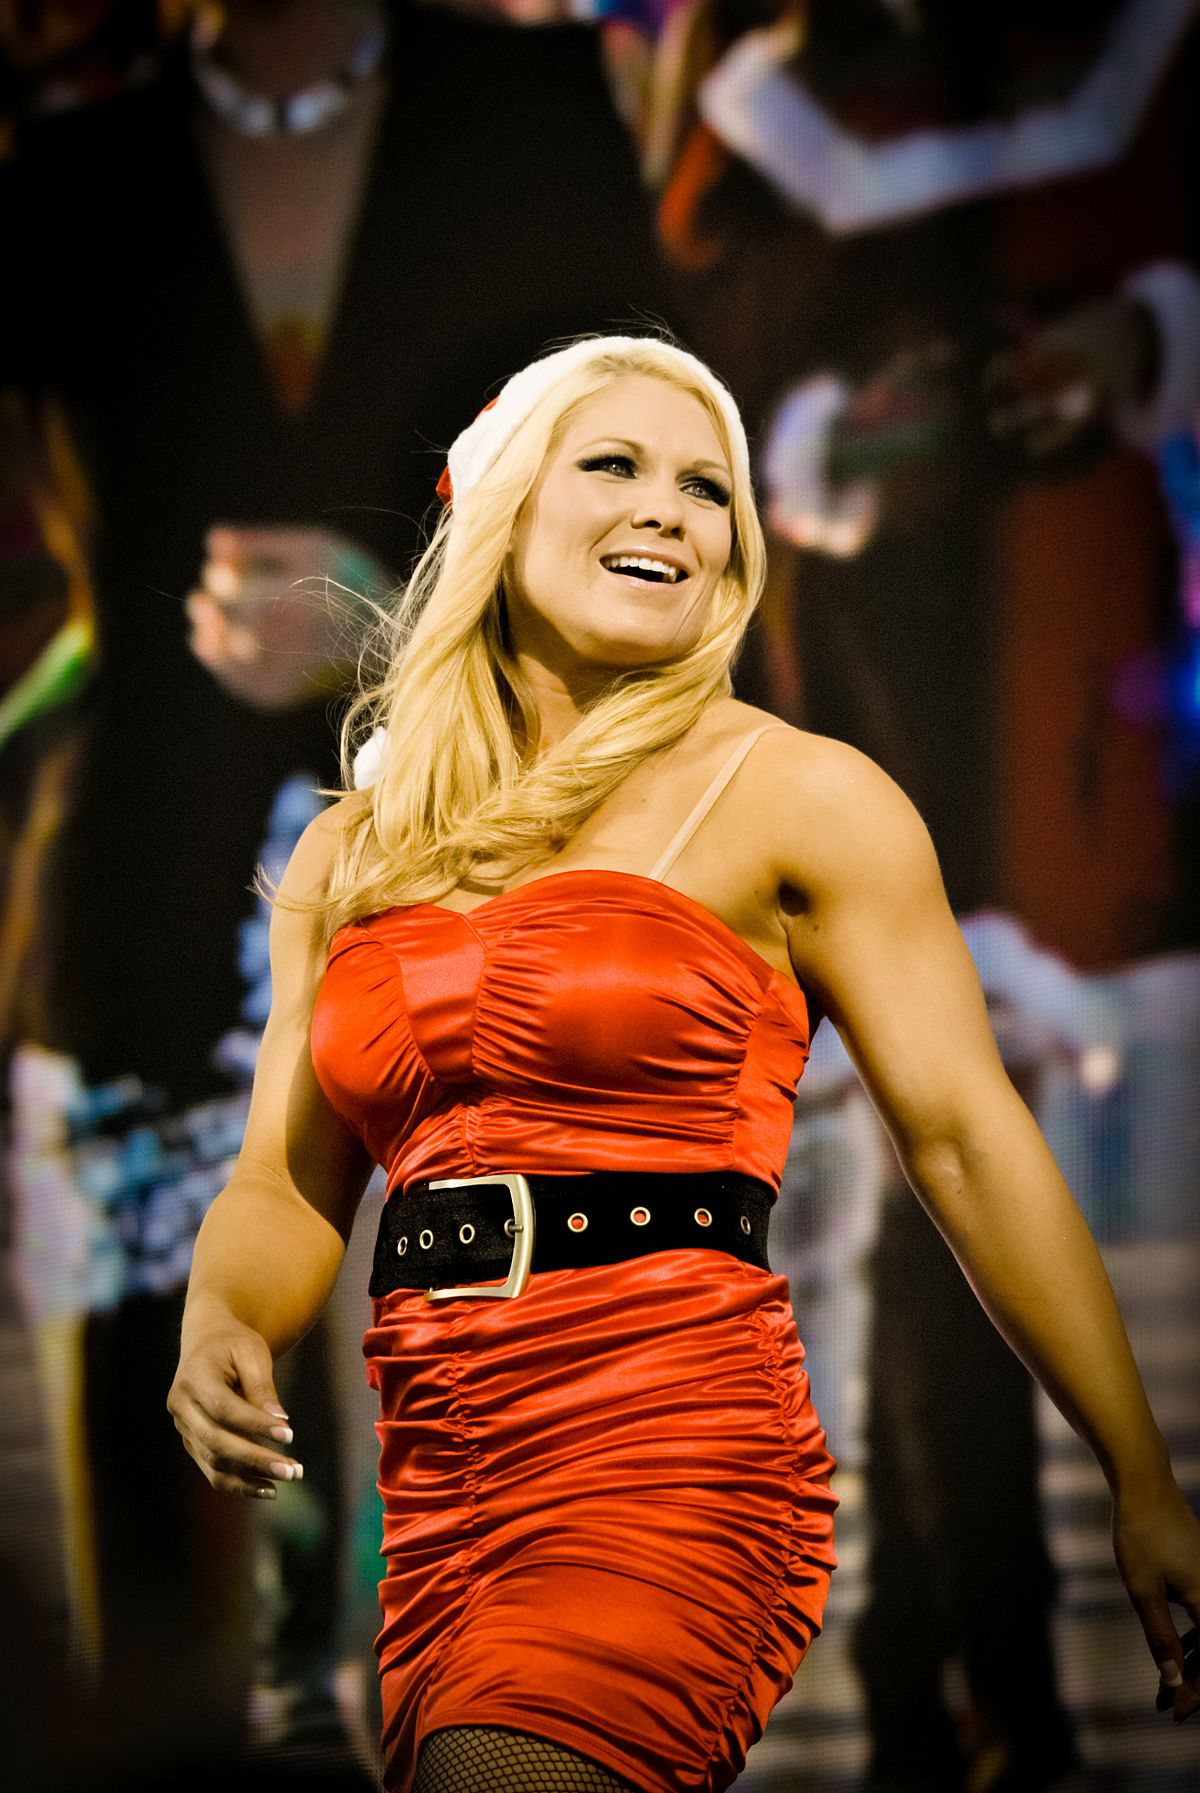 Wwe diva kelly kelly new video juicy j bands a make her dance ft lil wayne 2 chainz remix - 3 6